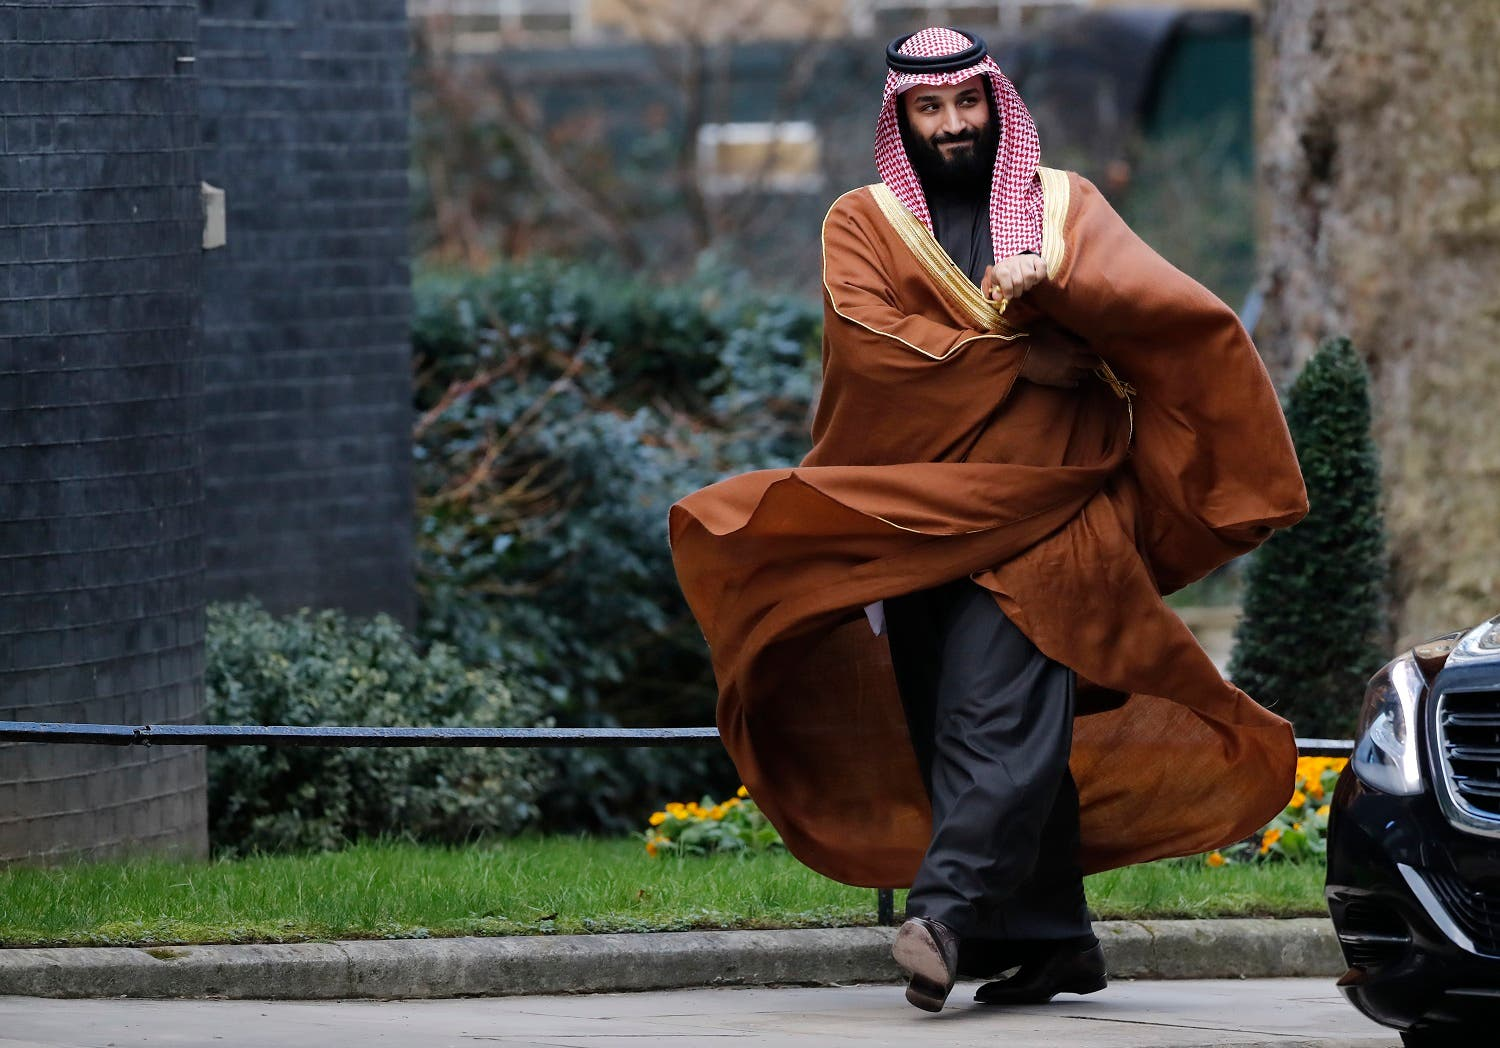 Saudi Arabia's Crown Prince Mohammed bin Salman arrives for talks at 10 Downing Street, in central London on March 7, 2018. (AFP)